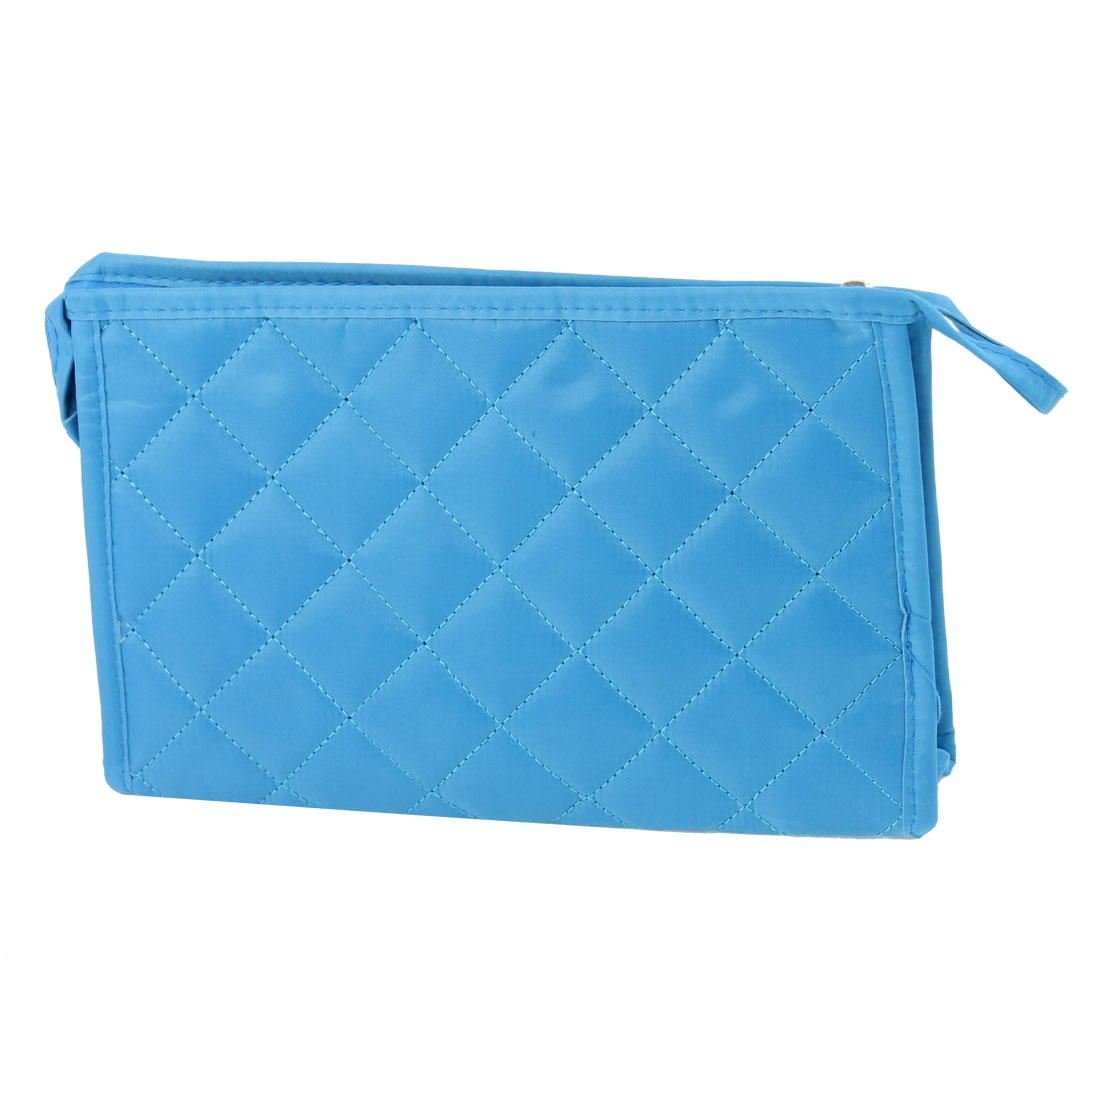 Lady Blue Rhombus Printed Rectangle Shaped Perfume Brushes Pouch Makeup Bag